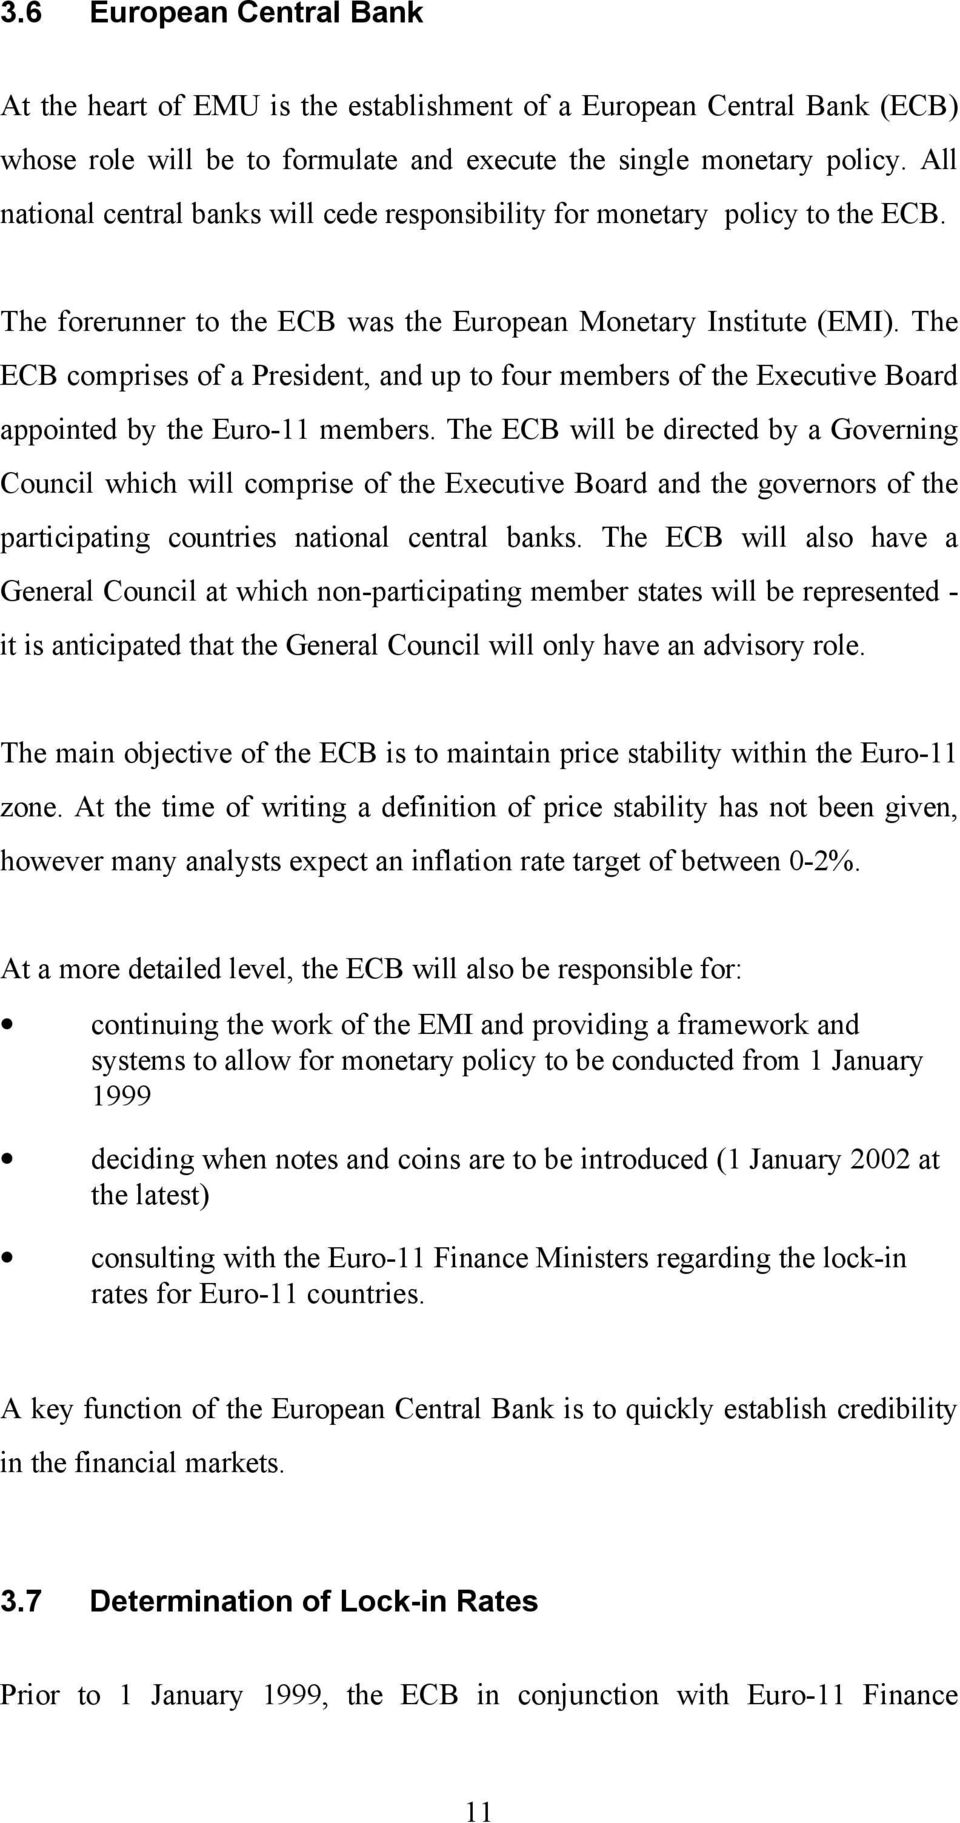 The ECB comprises of a President, and up to four members of the Executive Board appointed by the Euro-11 members.